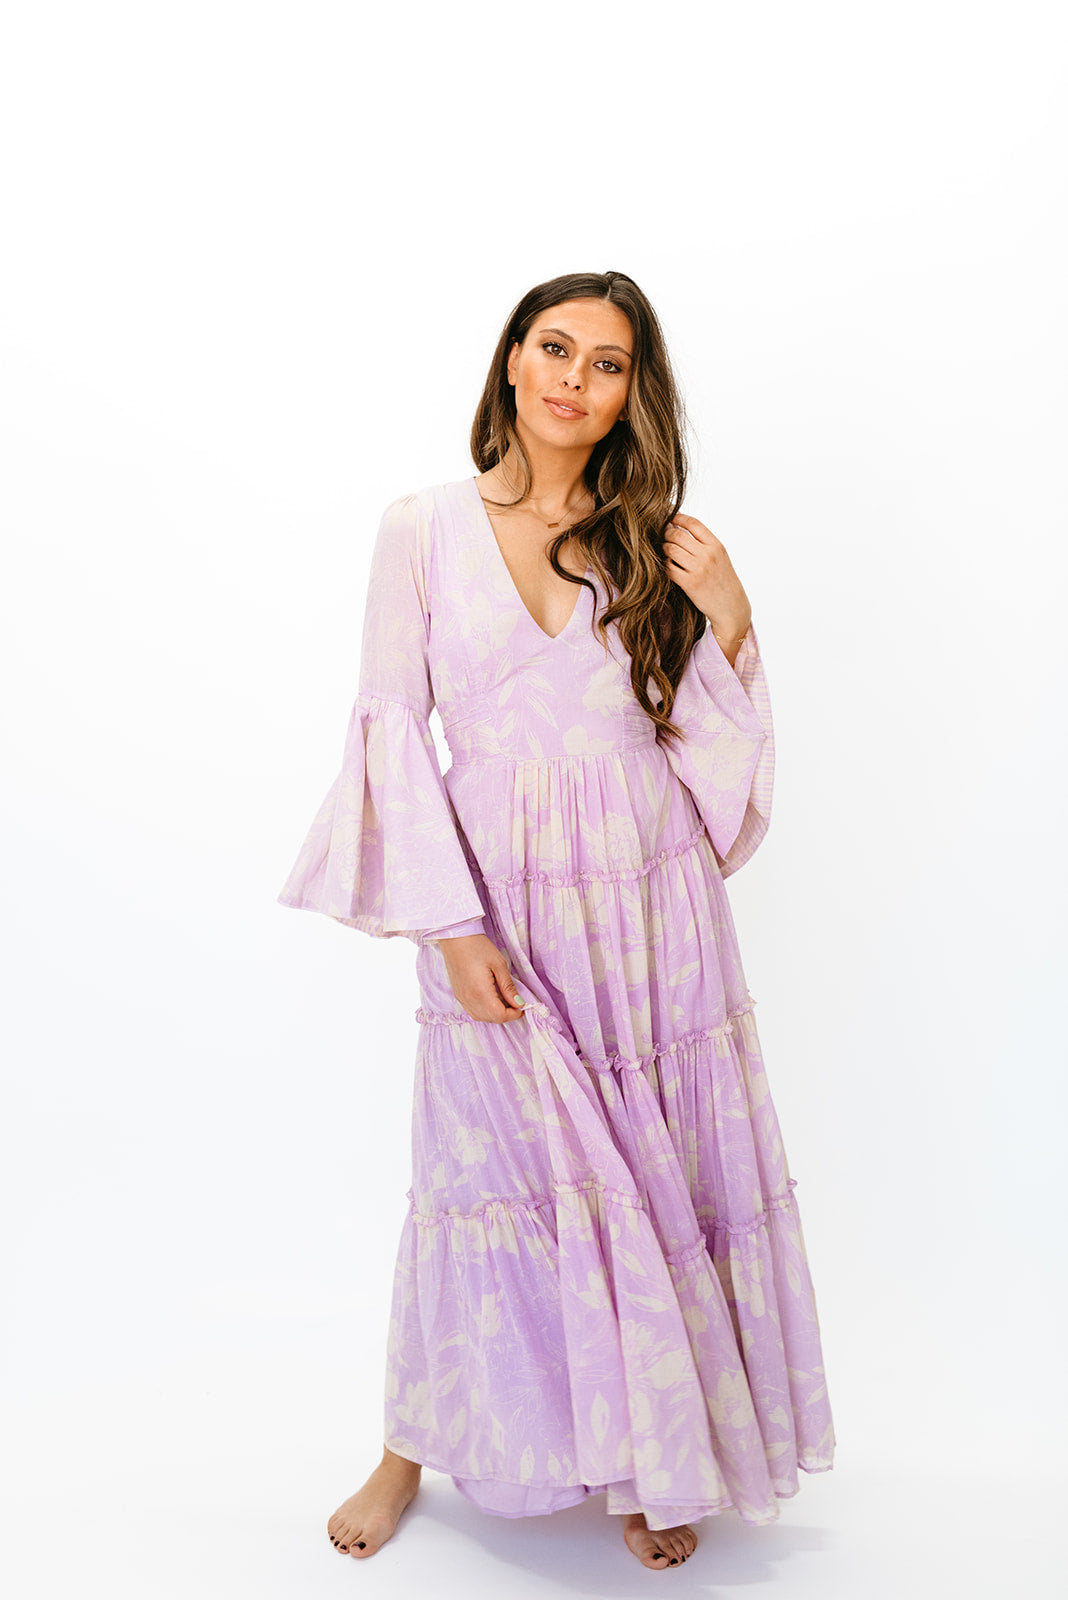 FREE PEOPLE CARMEN TIE BACK MAXI DRESS IN LILAC COMBO